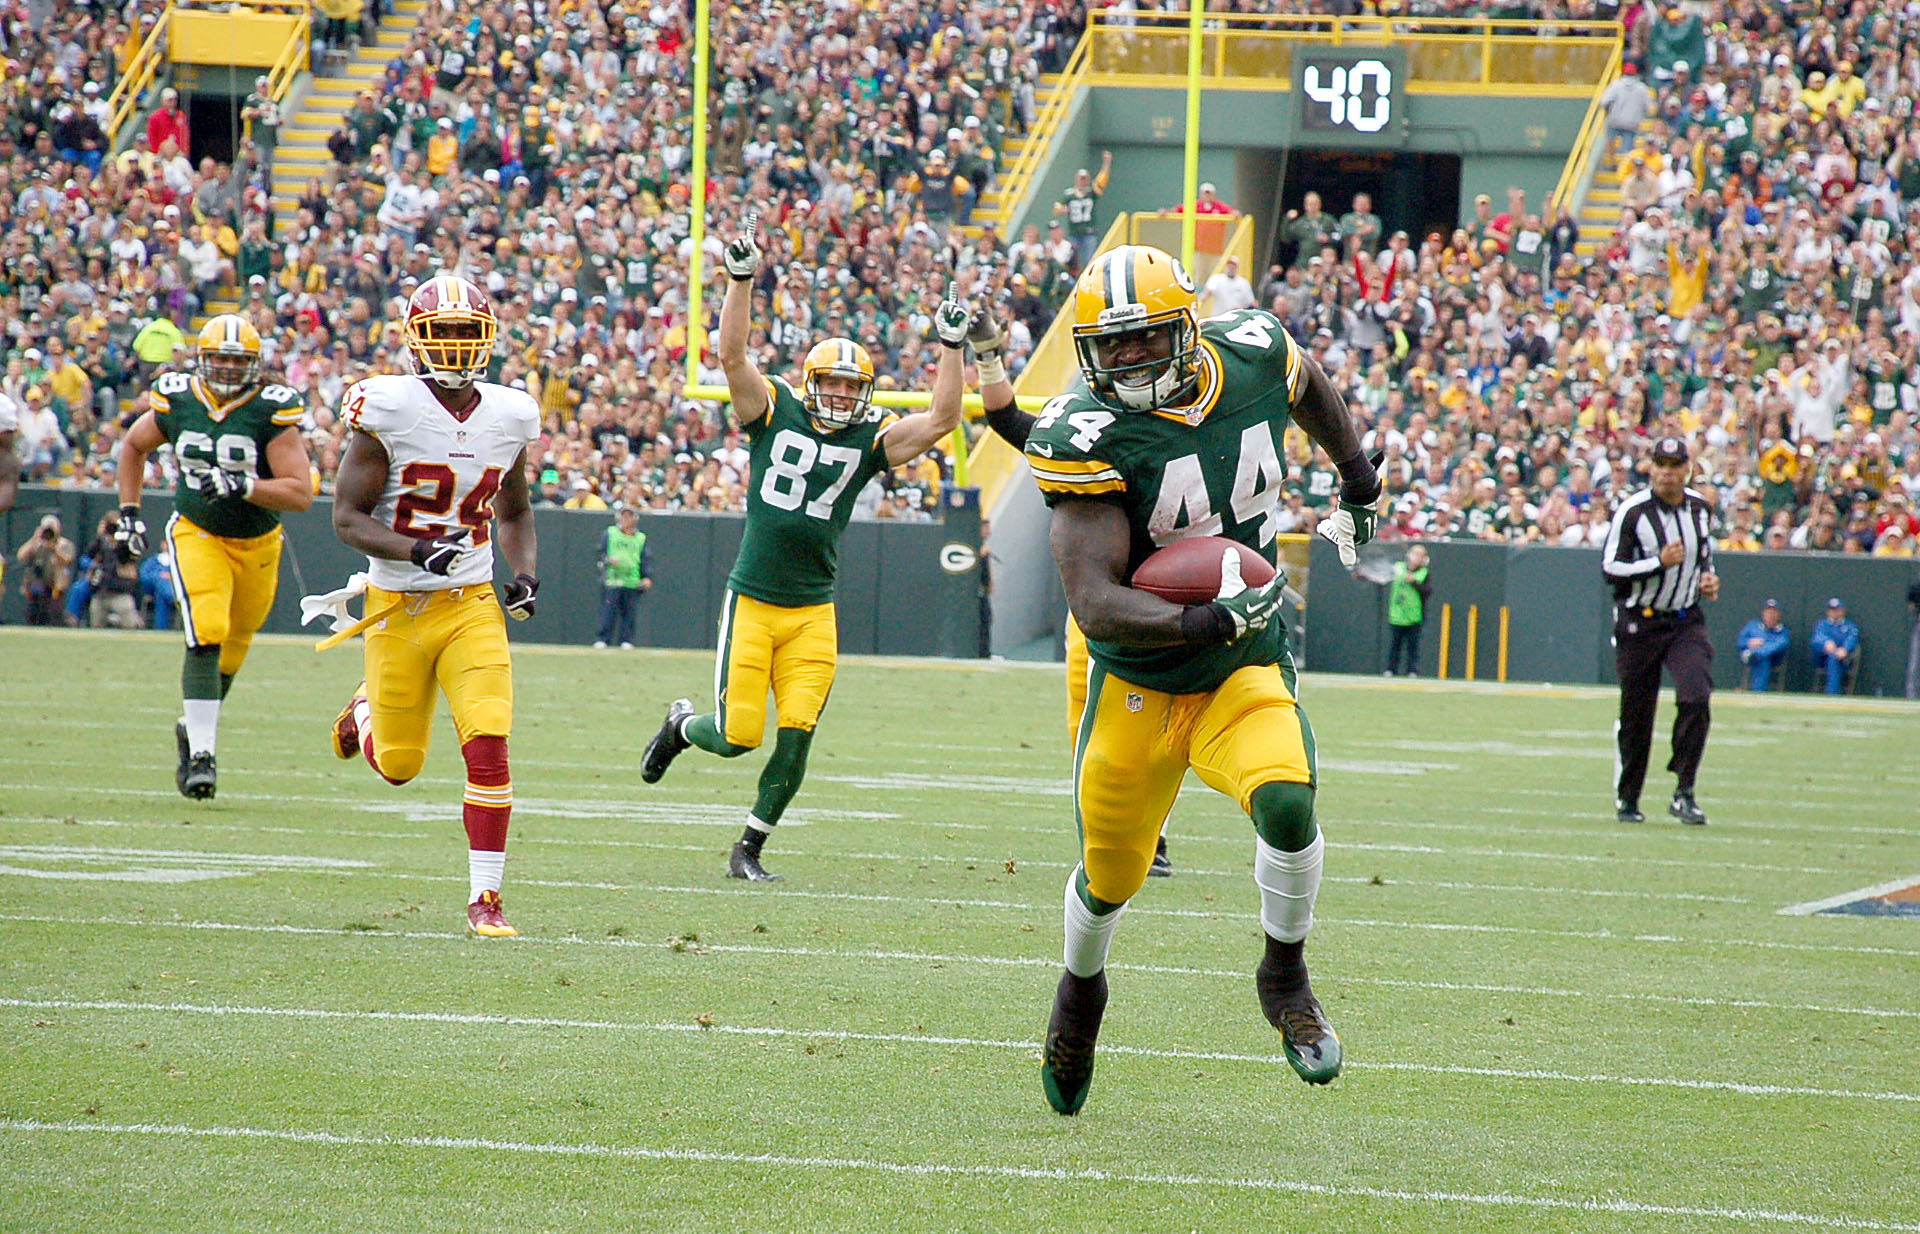 James Starks runs for a second half touchdown while Jordy Nelson celebrates the score. Brian Jopek photograph